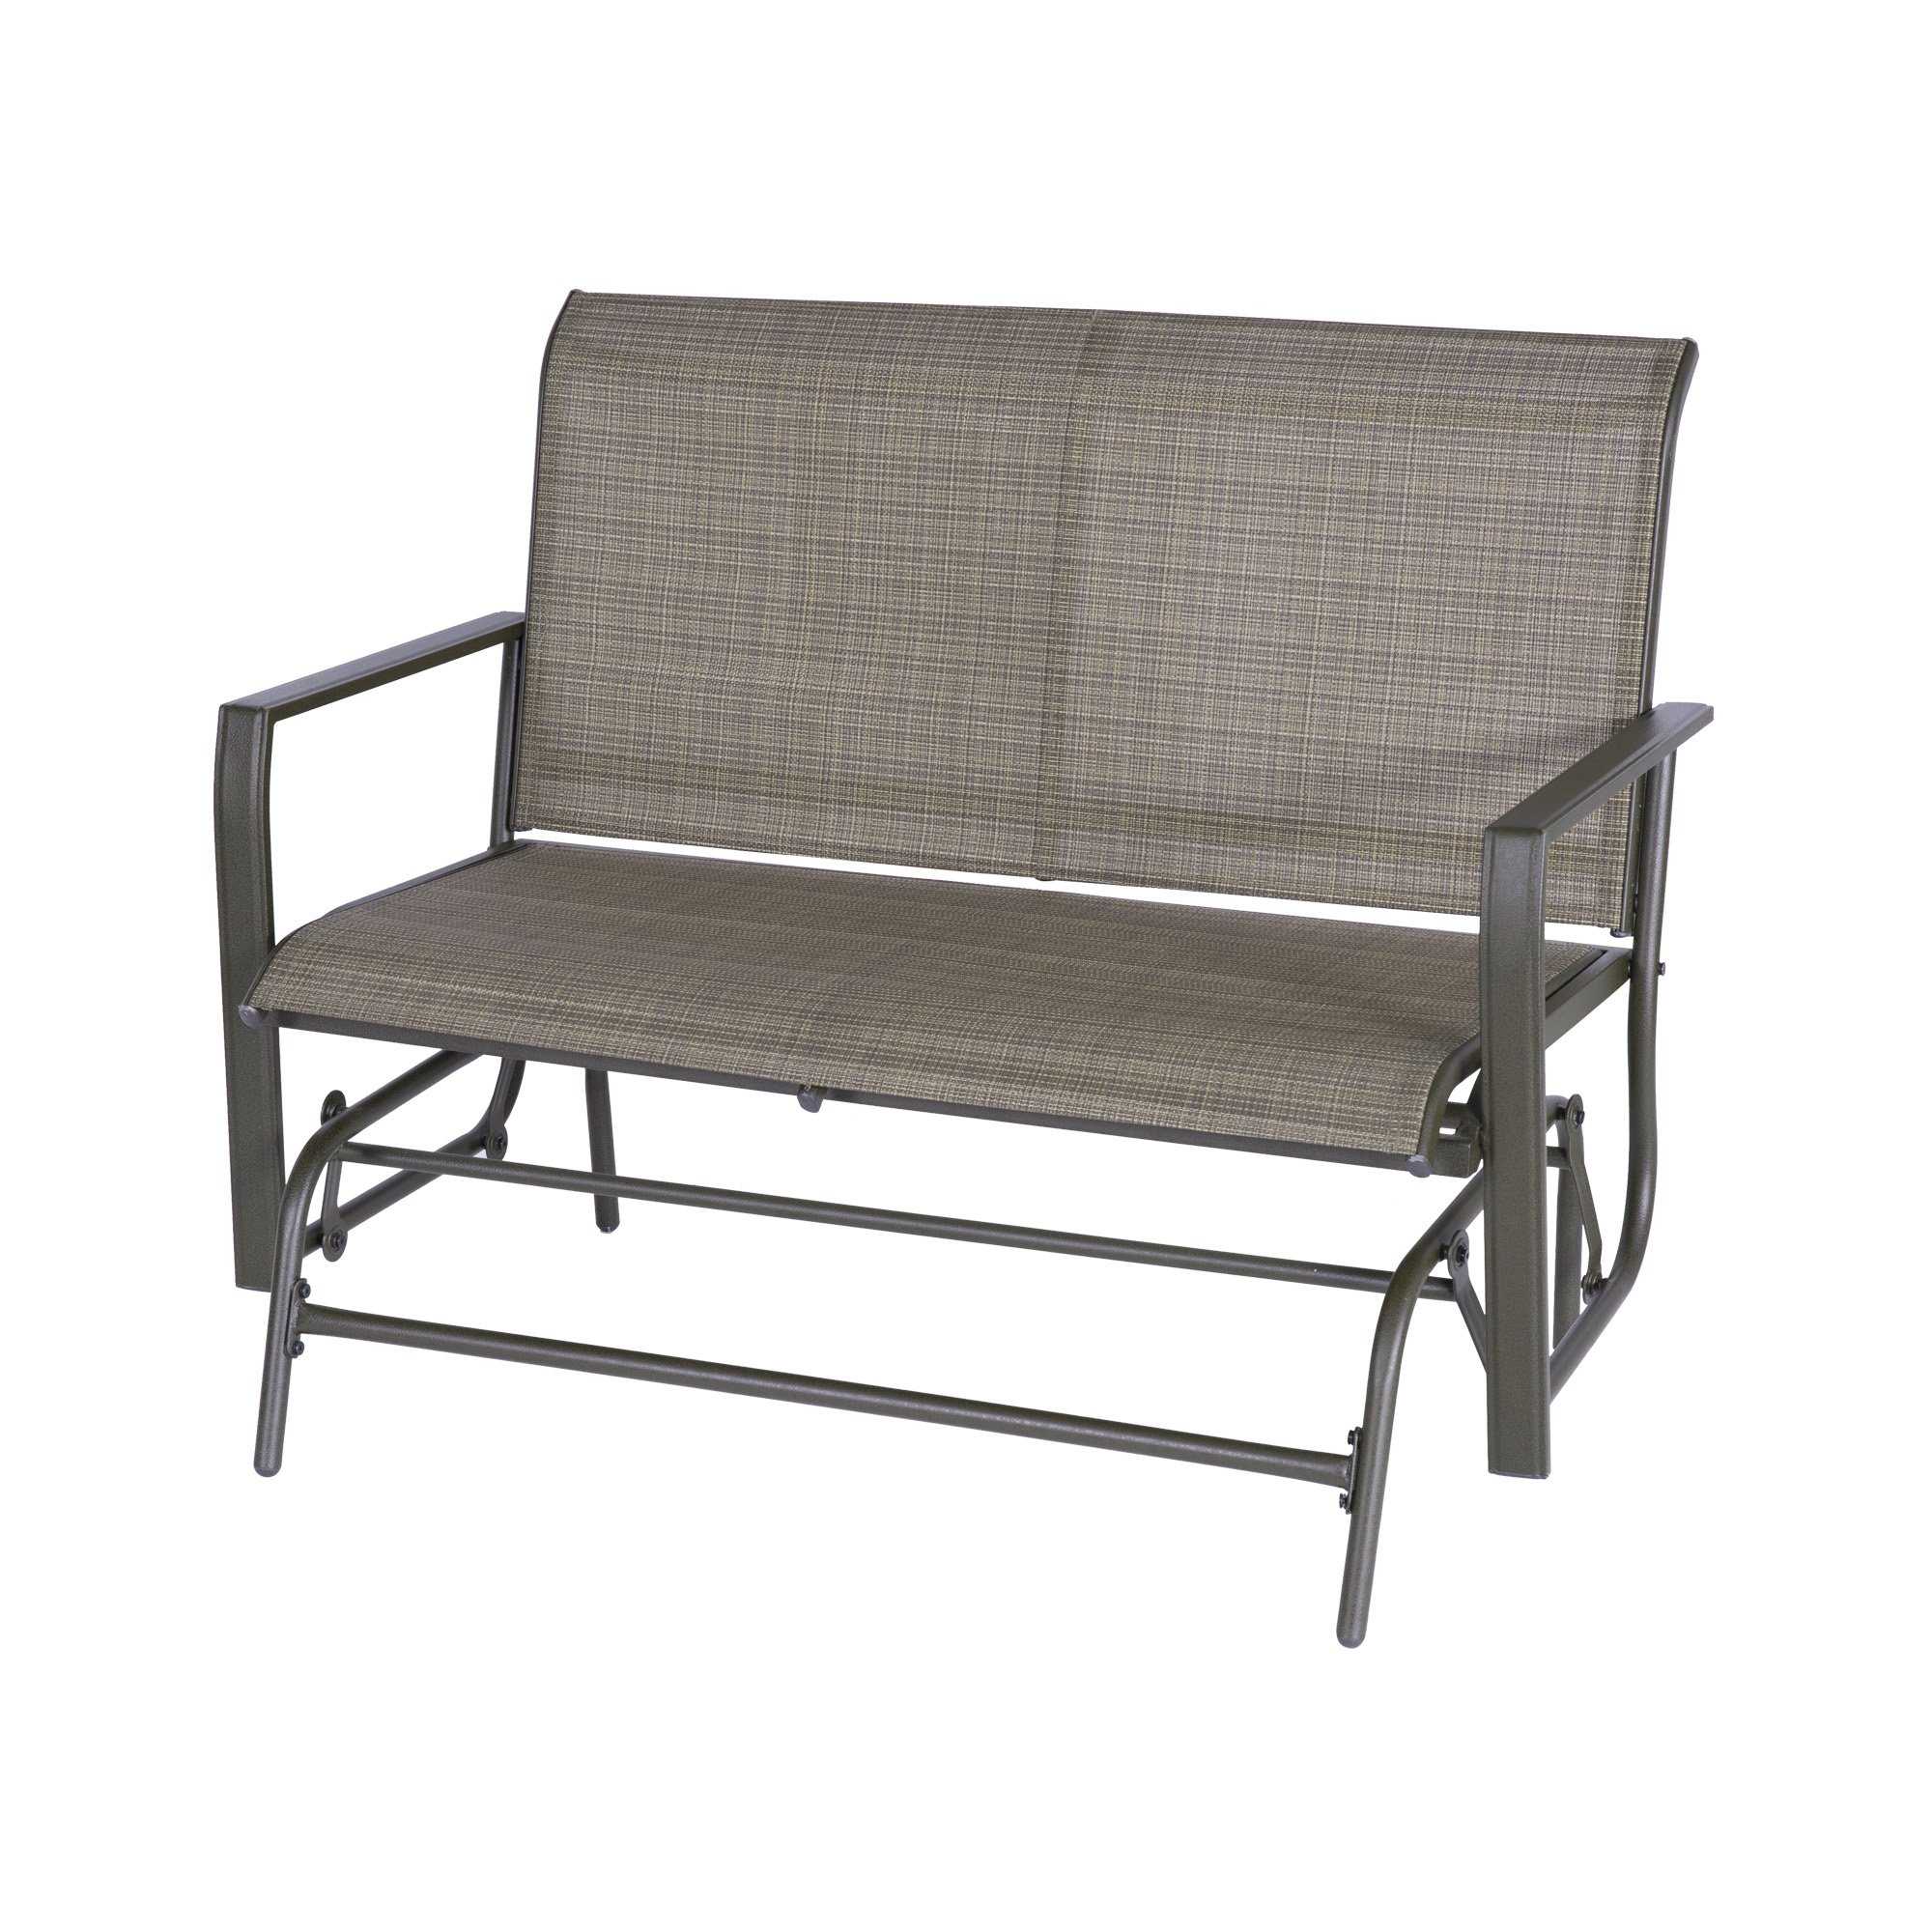 Buy Outdoor Patio Leisure Swing Rocker Glider Bench Loveseat Throughout Rocking Glider Benches (View 20 of 25)